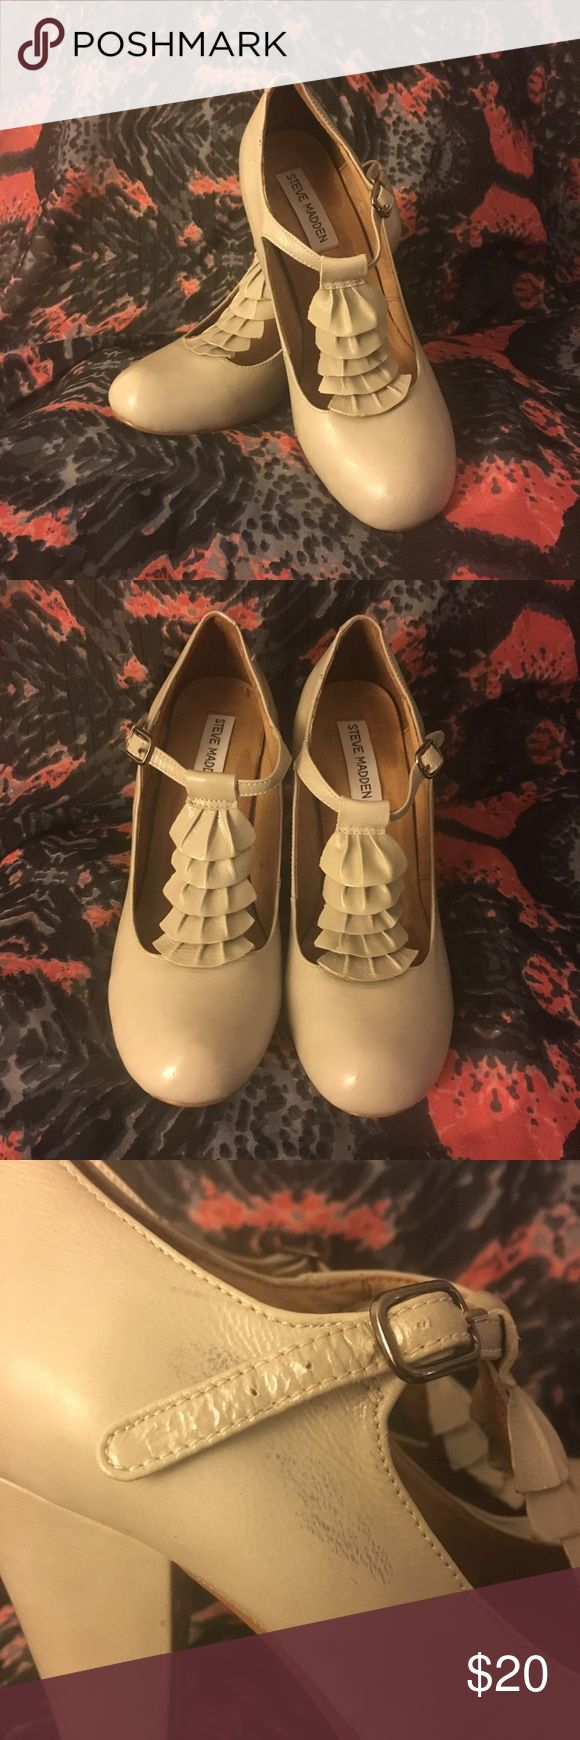 T-strap Steve Madden Heels Comfy and cute!  Vintage 1940s pin-up feel. Light grey color. Worn under 5 times but do have a scuff of the right shoe as pictured. Thanks for looking! Steve Madden Shoes Heels